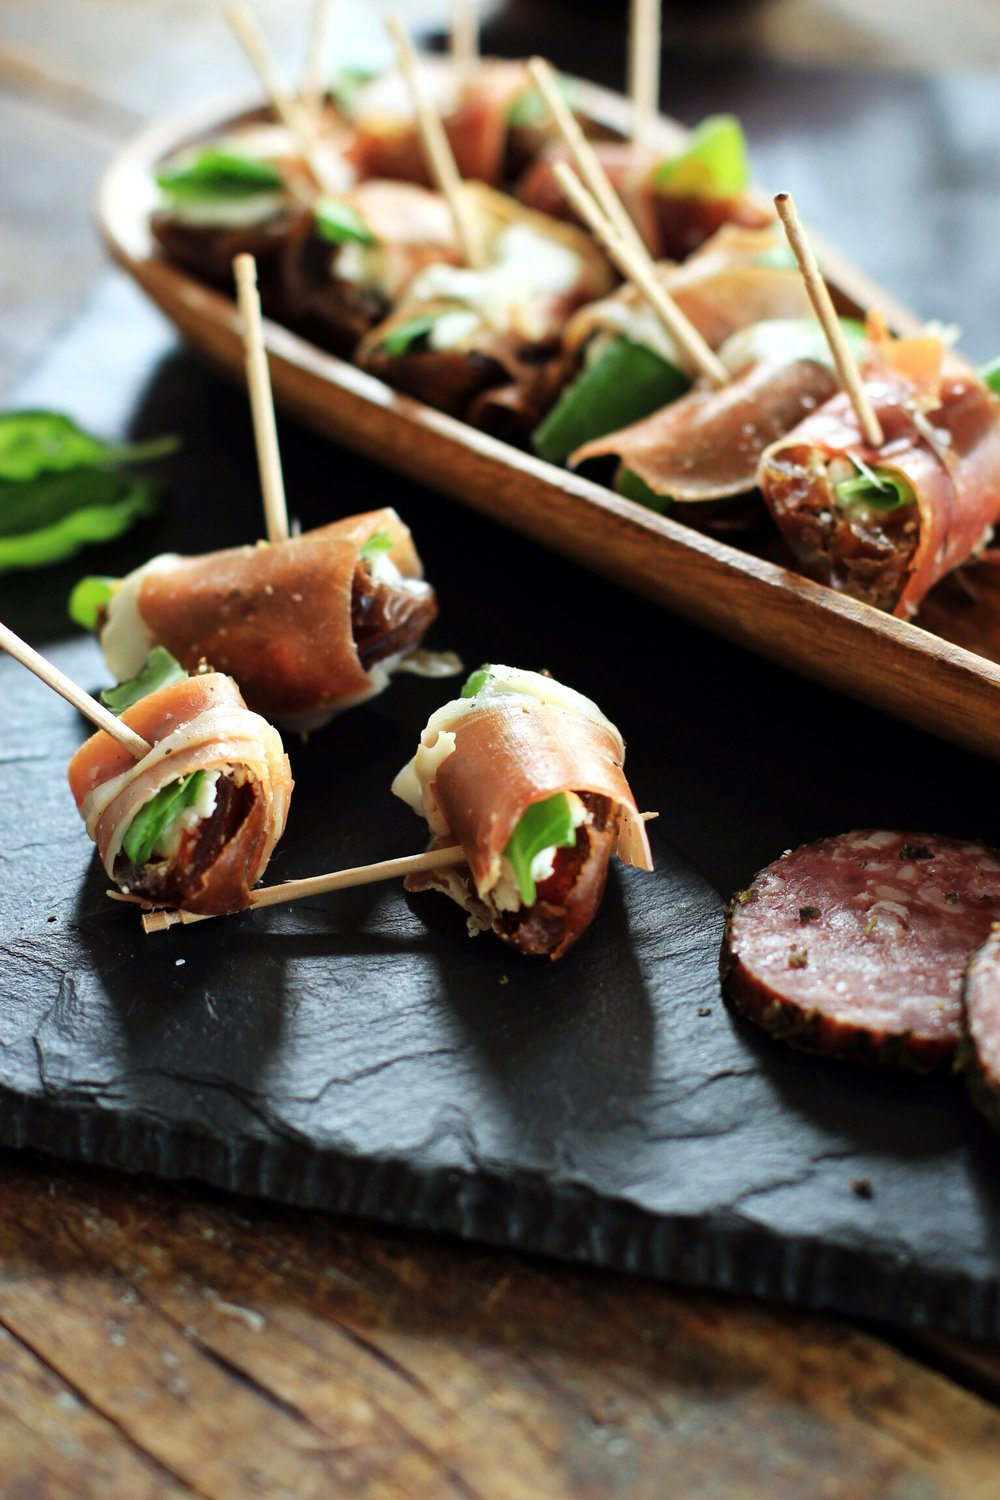 Goat cheese stuffed dates with Serrano ham and basil - The Pastiche